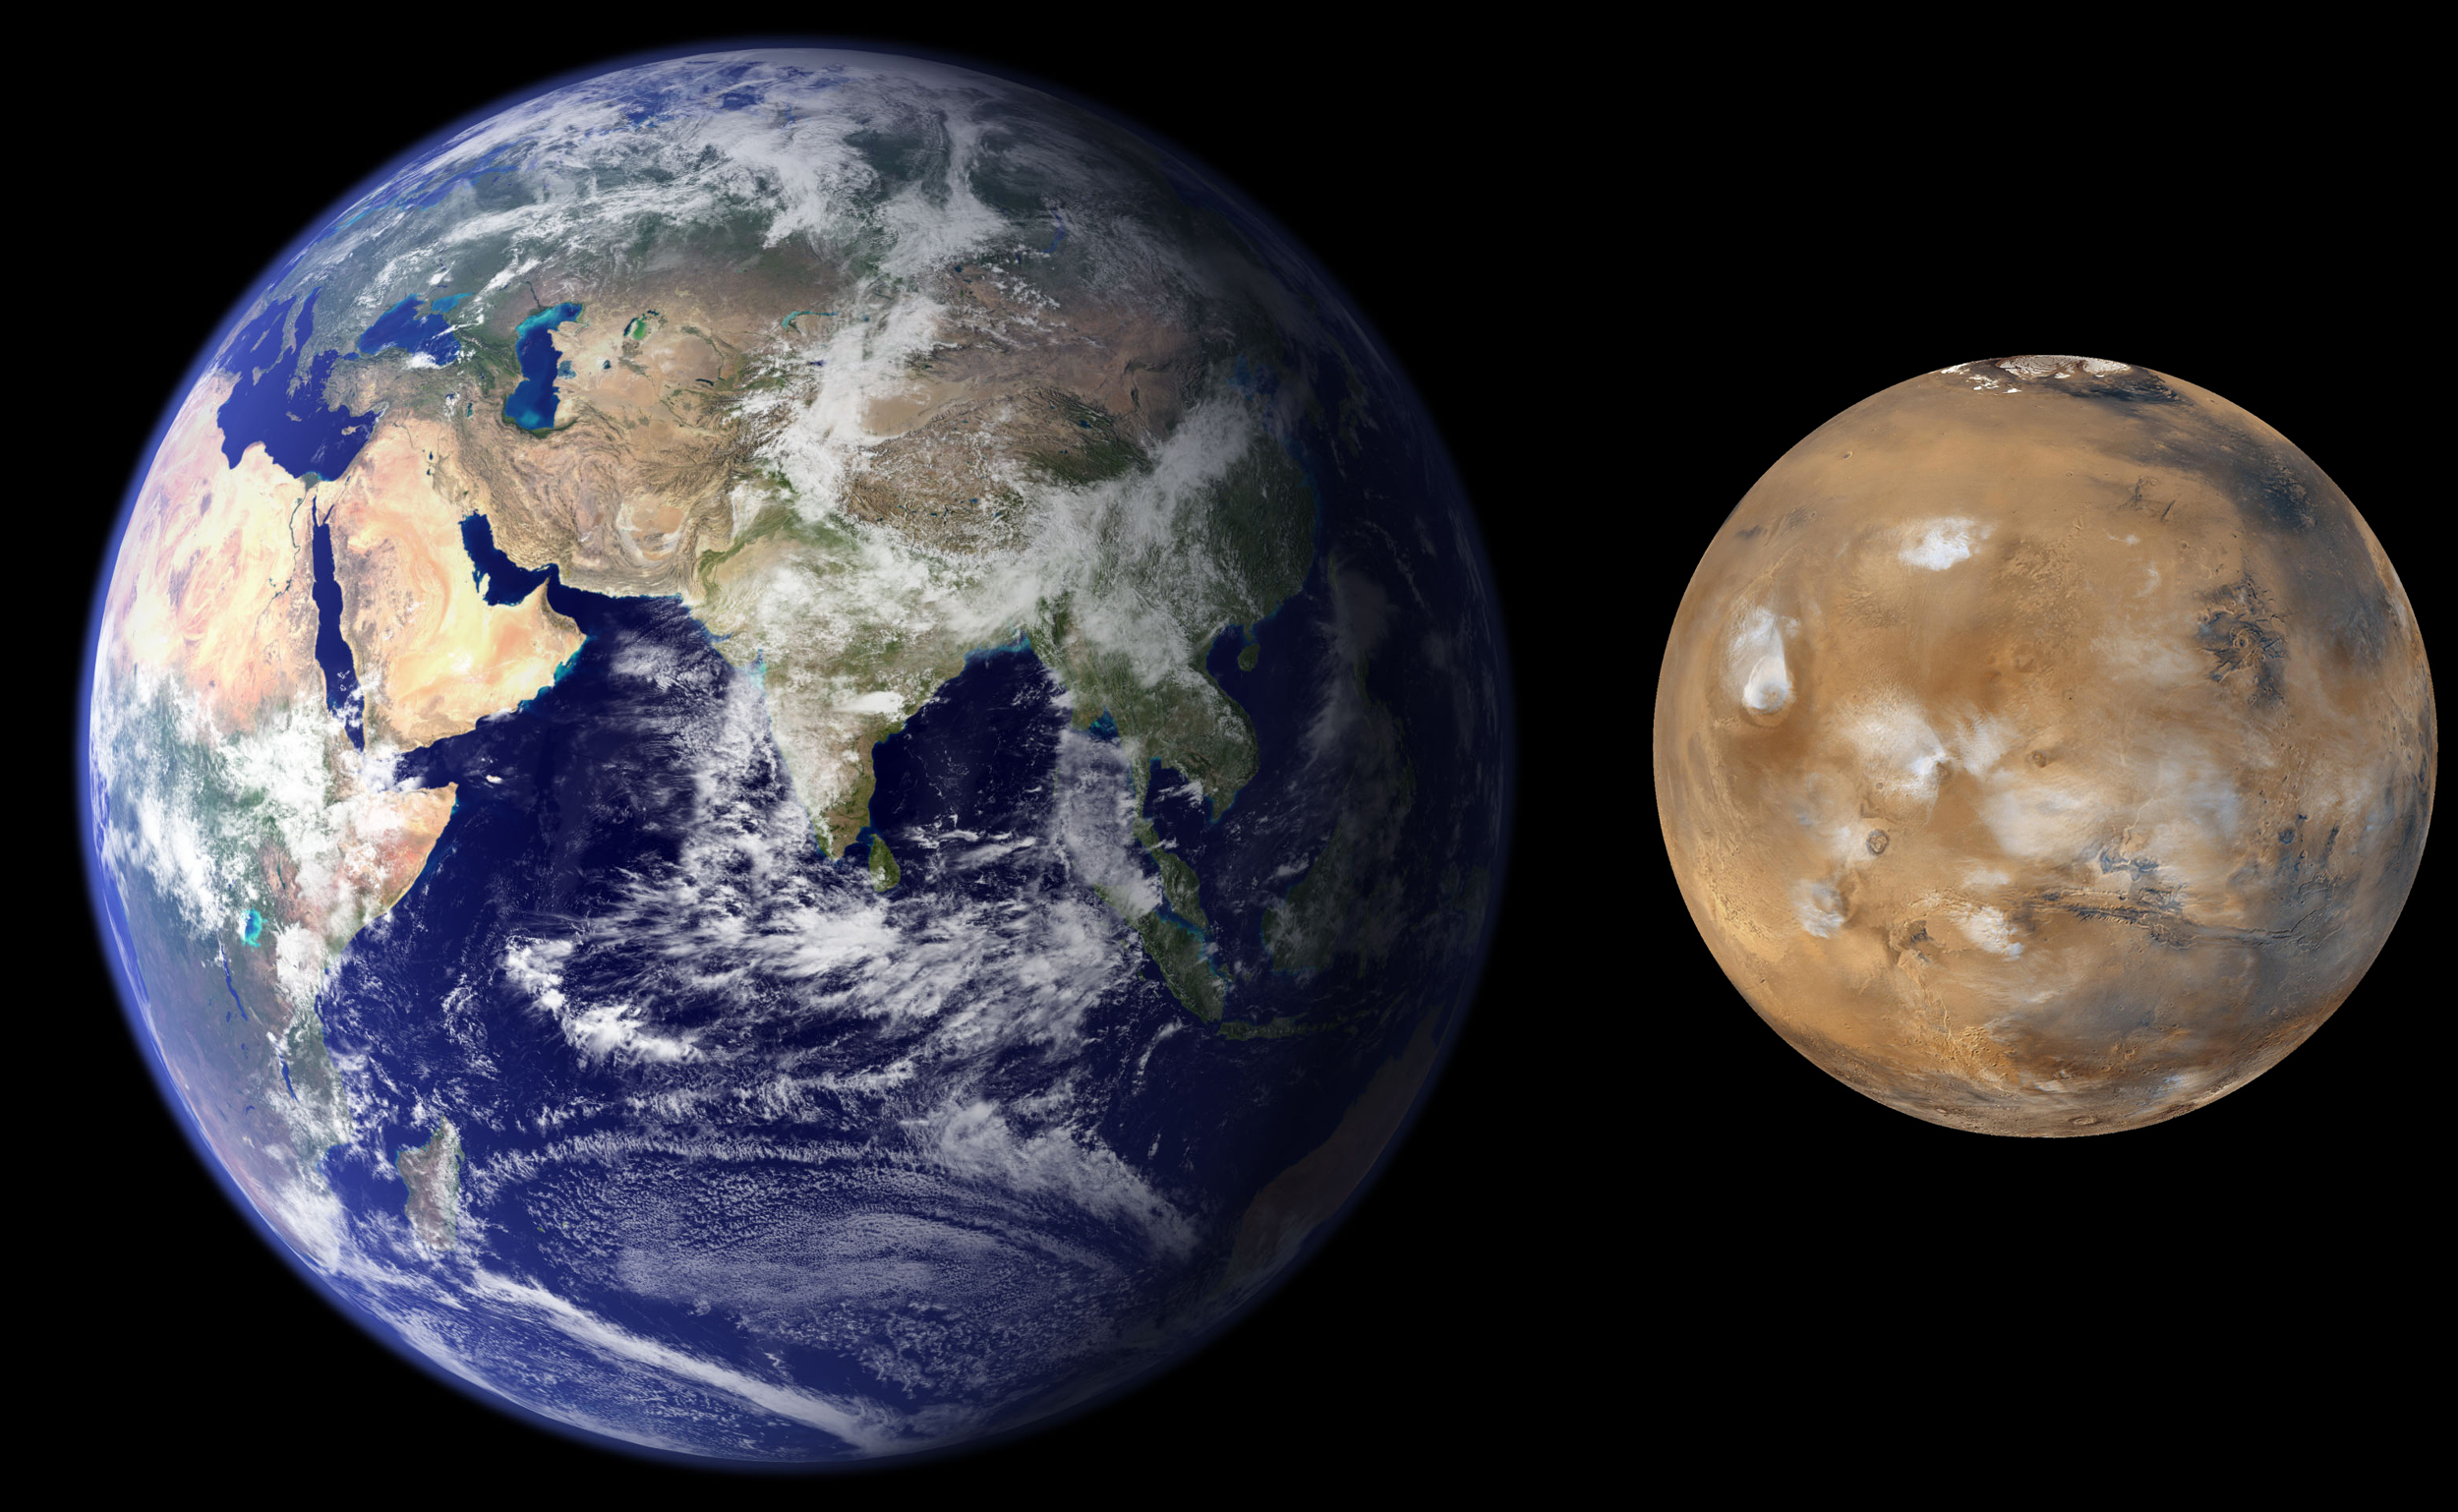 File:Mars Earth Comparison 2.jpg